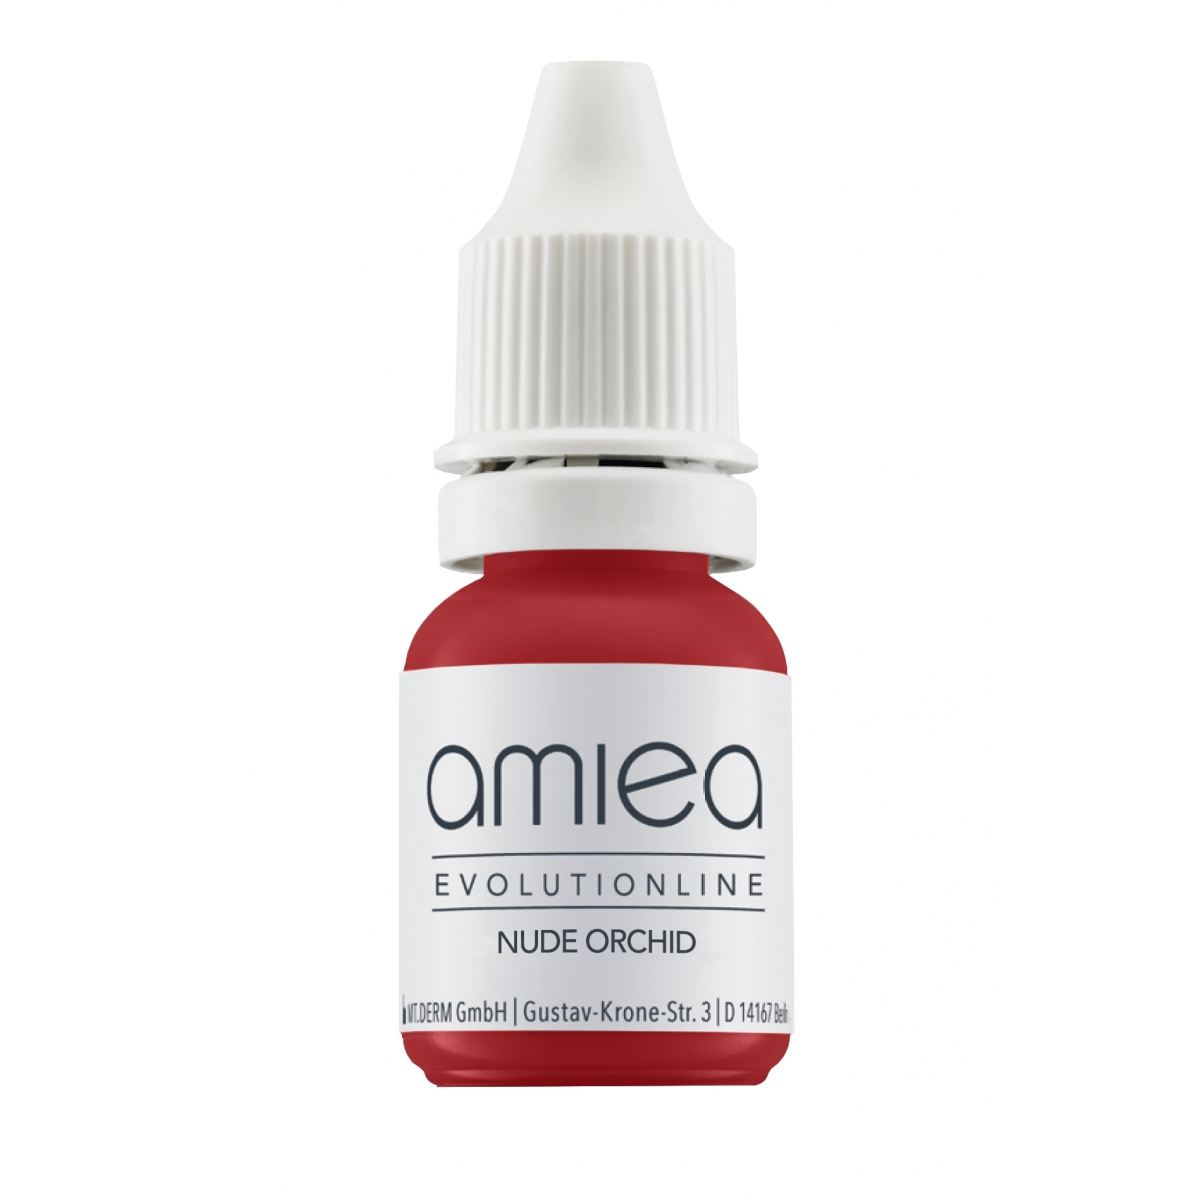 EVOLUTION LINE (10ml) - PIGMENT NUDE ORCHID EVOLUTIONLINE AMIEA (10 ml)